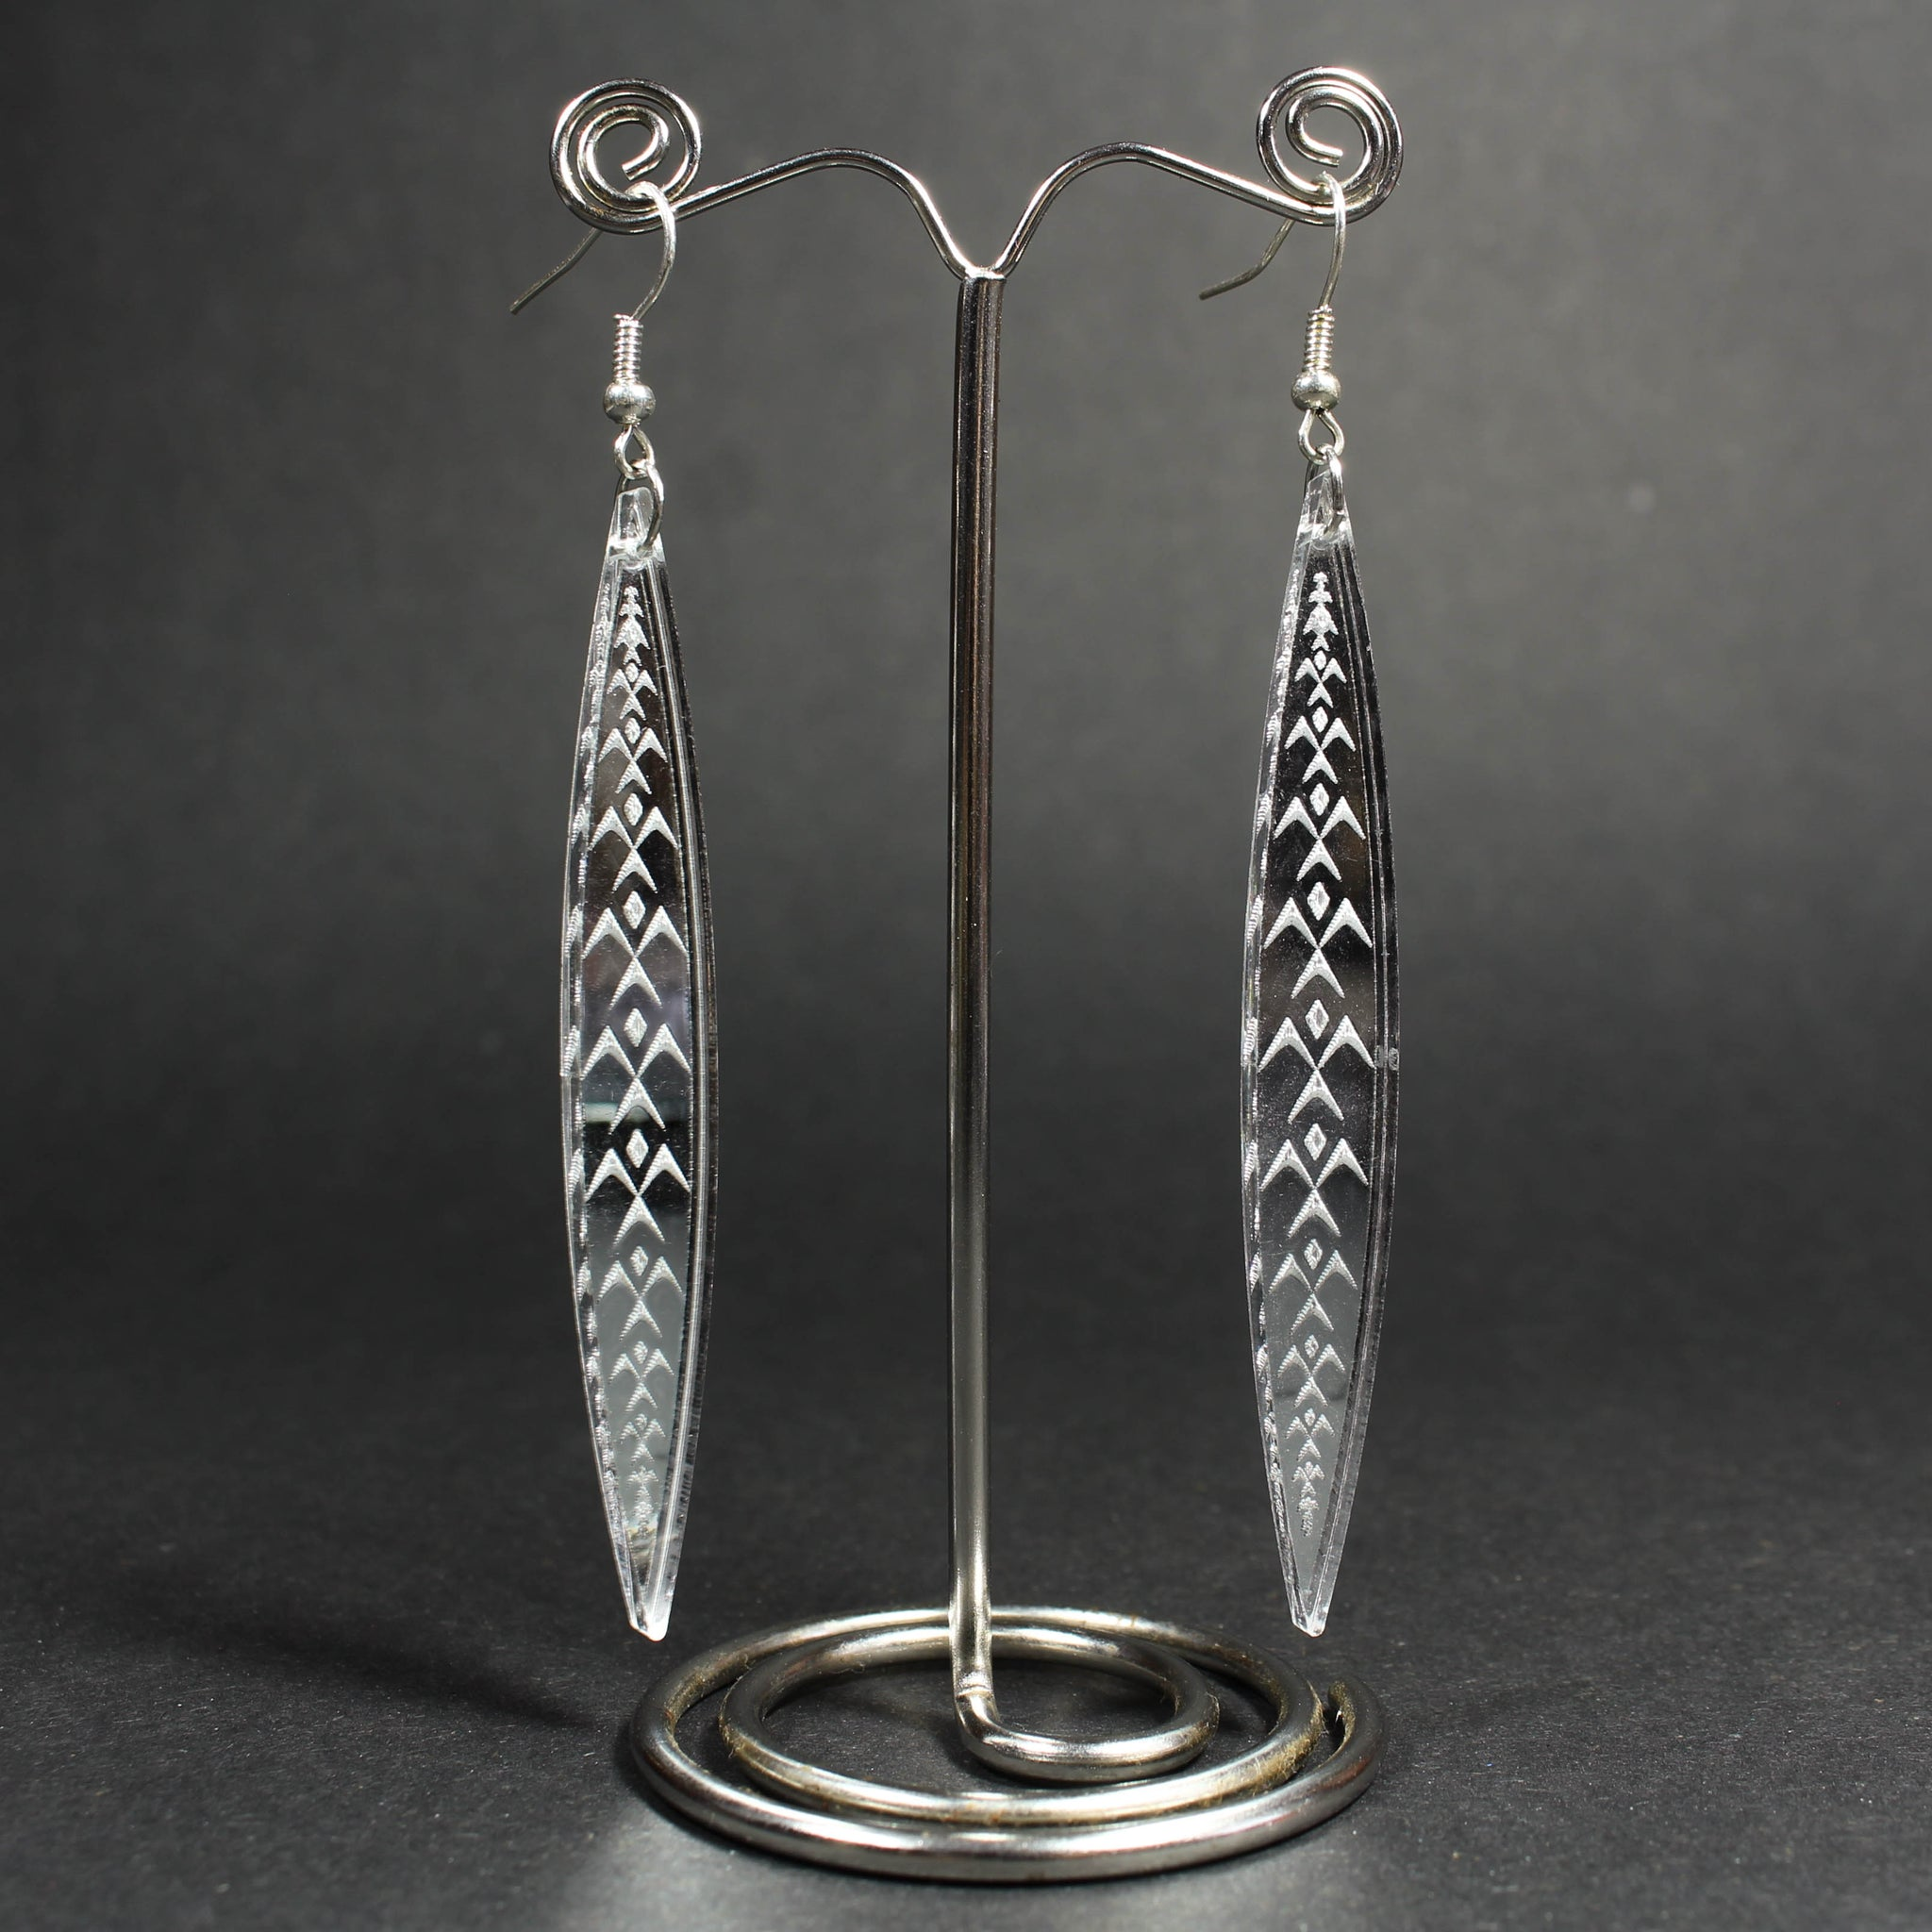 Gogo Bird Reflective Earrings